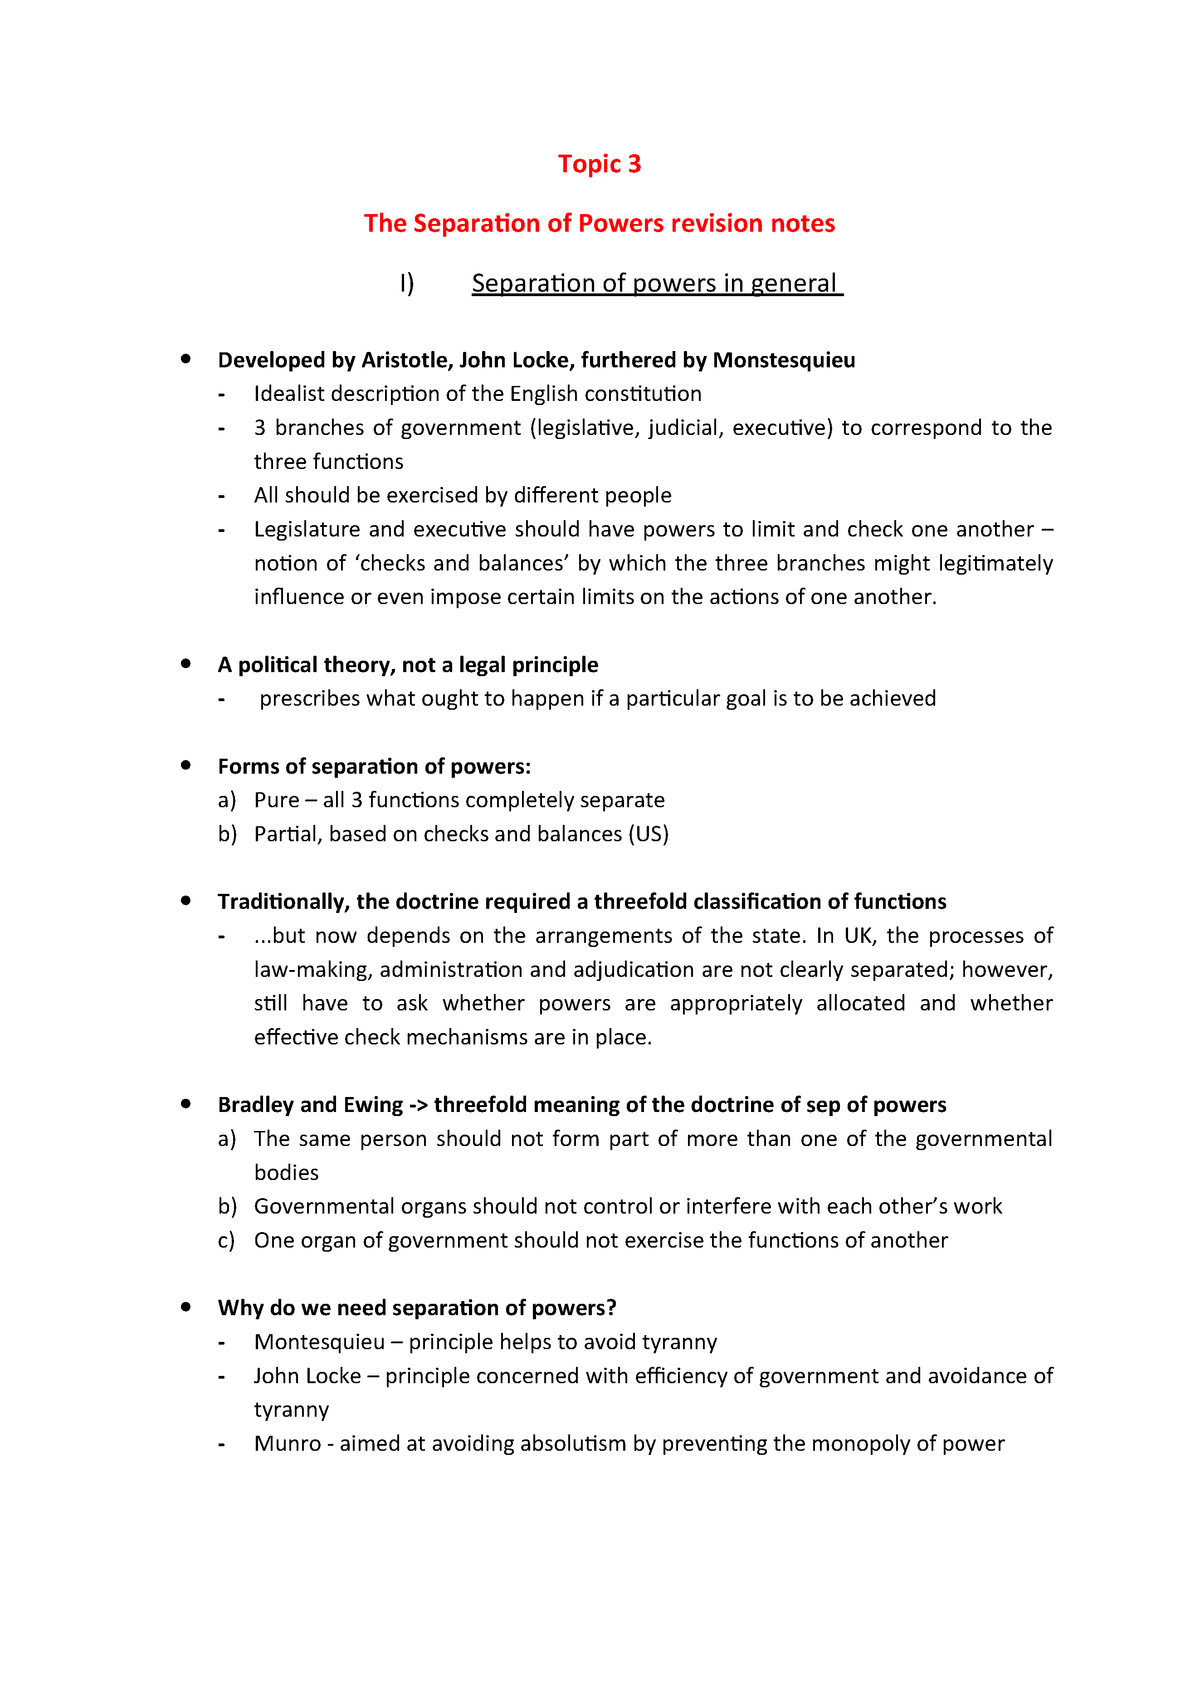 Separation of powers revision notes - Law - StuDocu